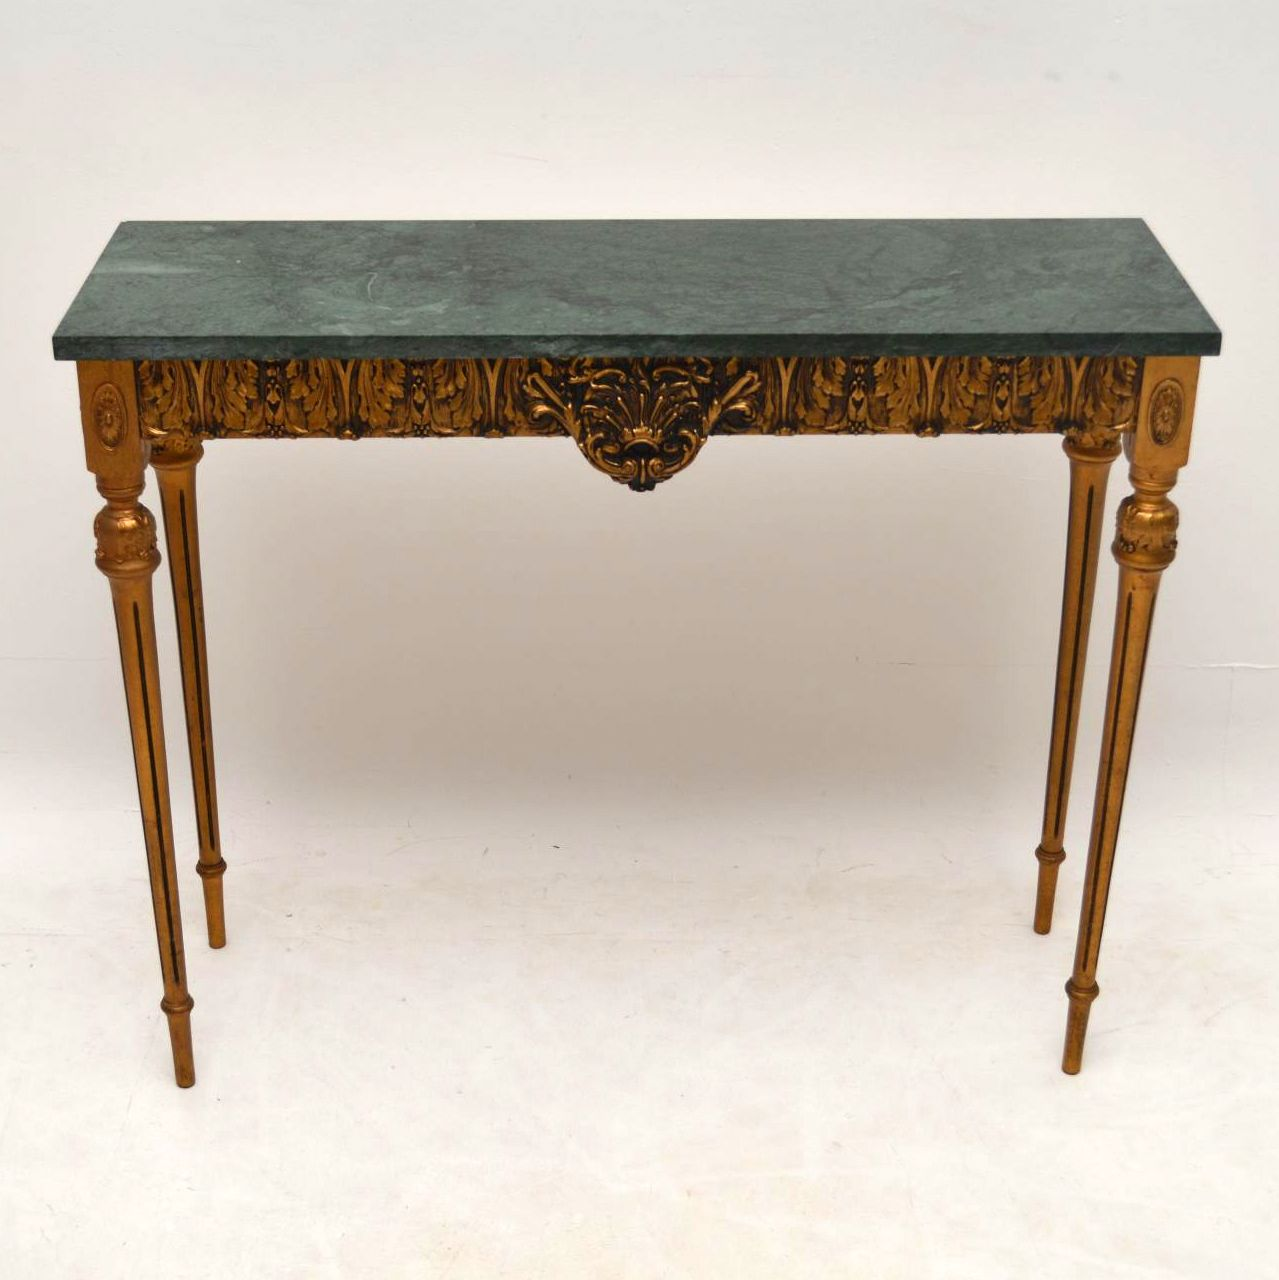 Antique french marble top gilt wood side table interior